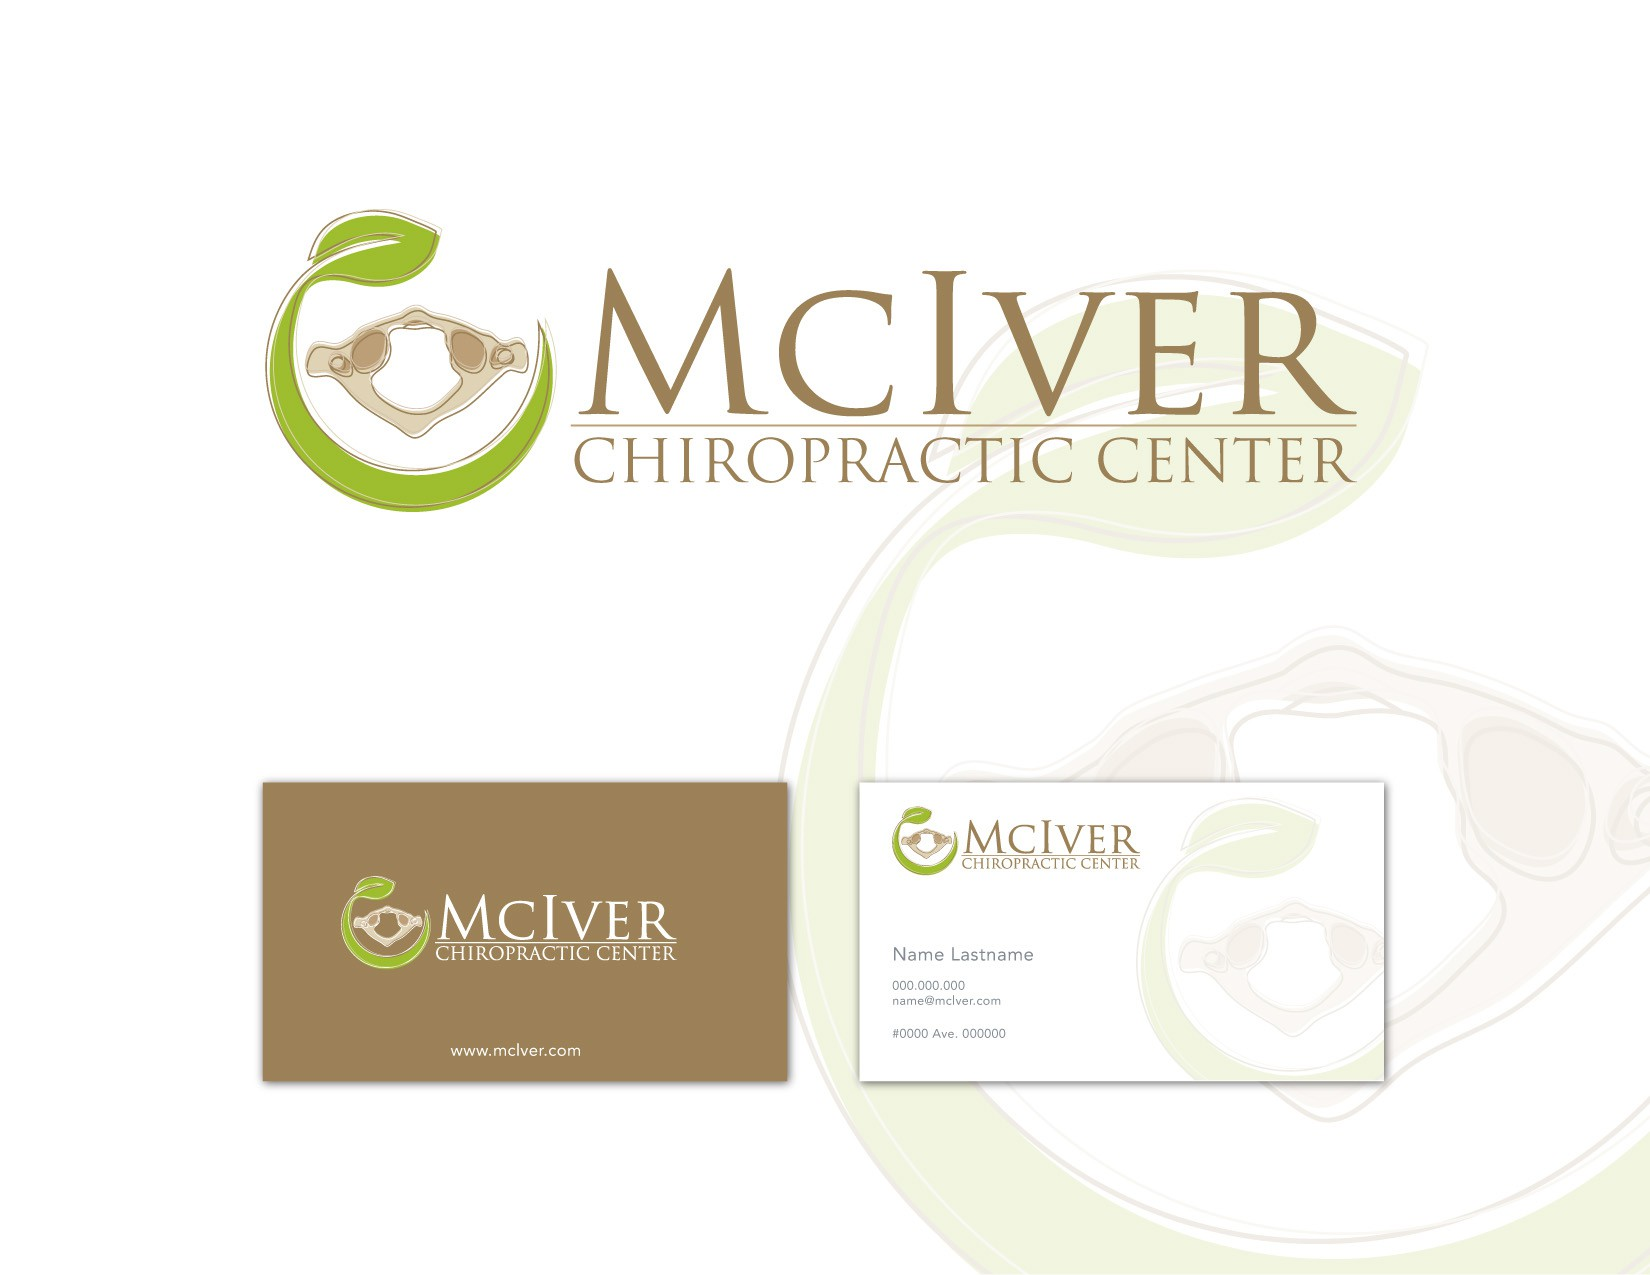 McIver Chiropractic Center needs a new logo